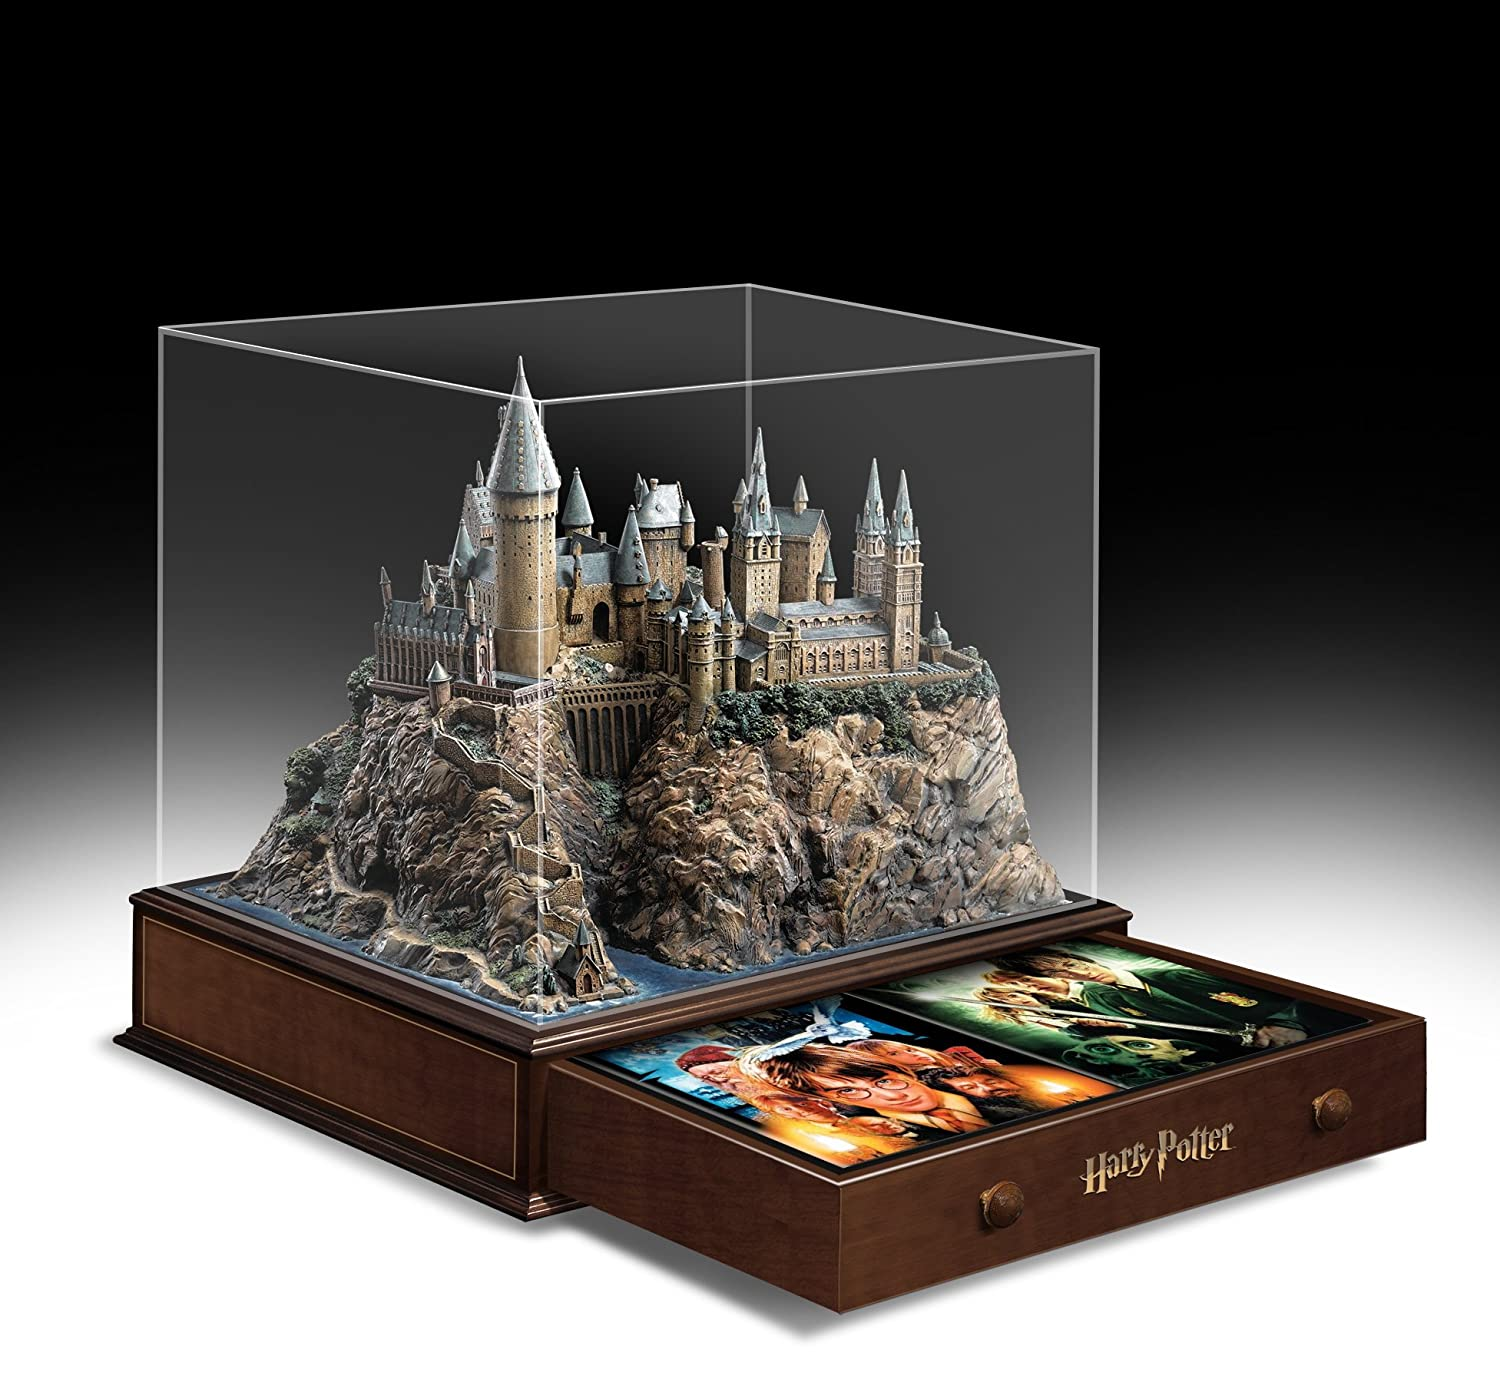 Harry Potter 1-6 Collectors Edition, 12 DVDs, Hogwarts Castle ...